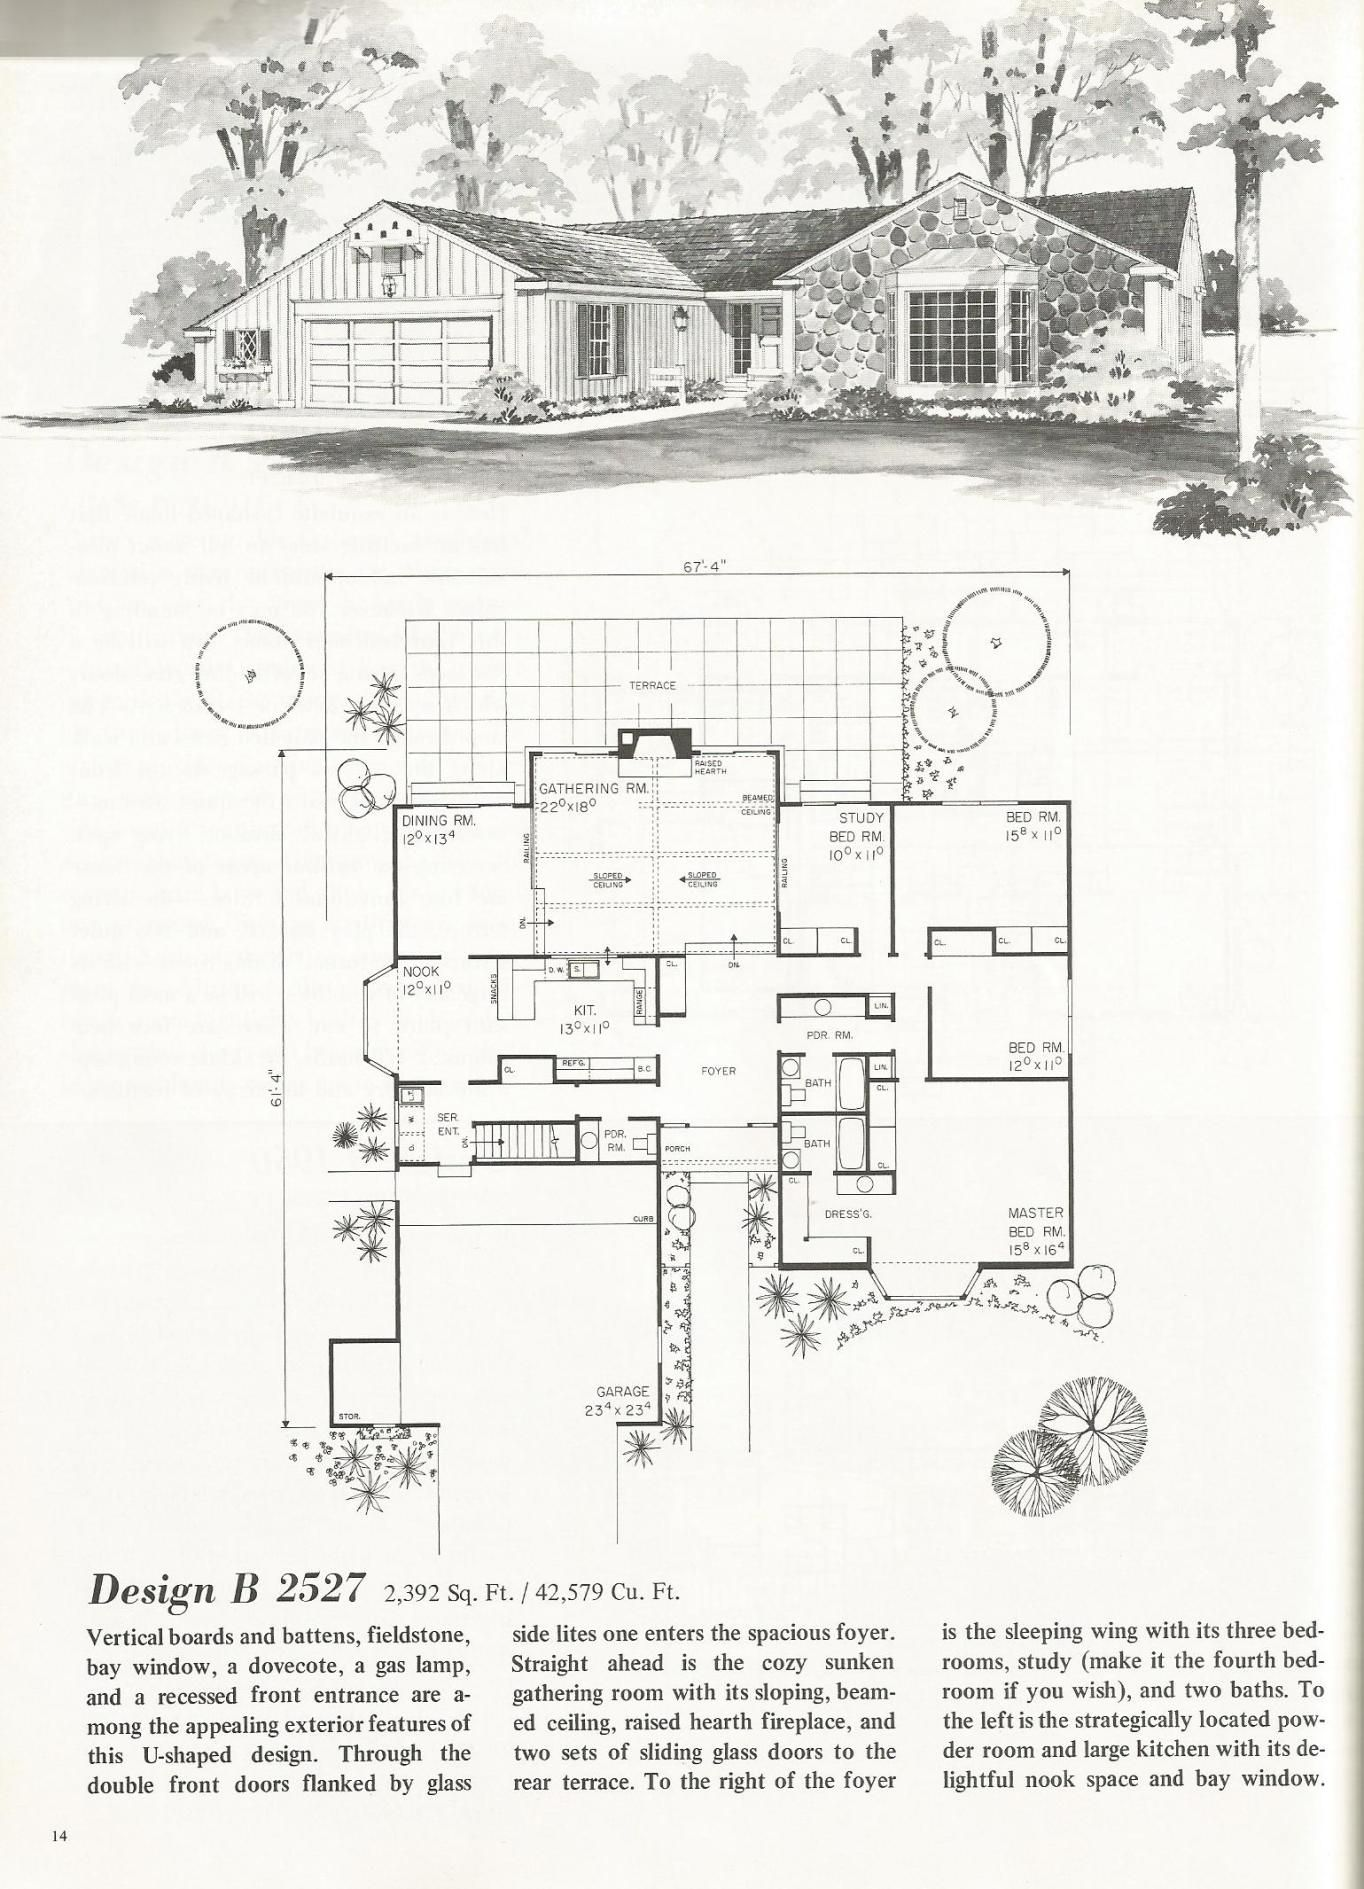 1bb0ff4b7cd747bfeac3cb4f7f8856ce U Shaped House Plans Mid Century Modern Ranch on cape cod ranch house plans, mid century ranch doors, mid century ranch exteriors, vintage ranch house plans, mid century atomic ranch, mid century ranch homes,